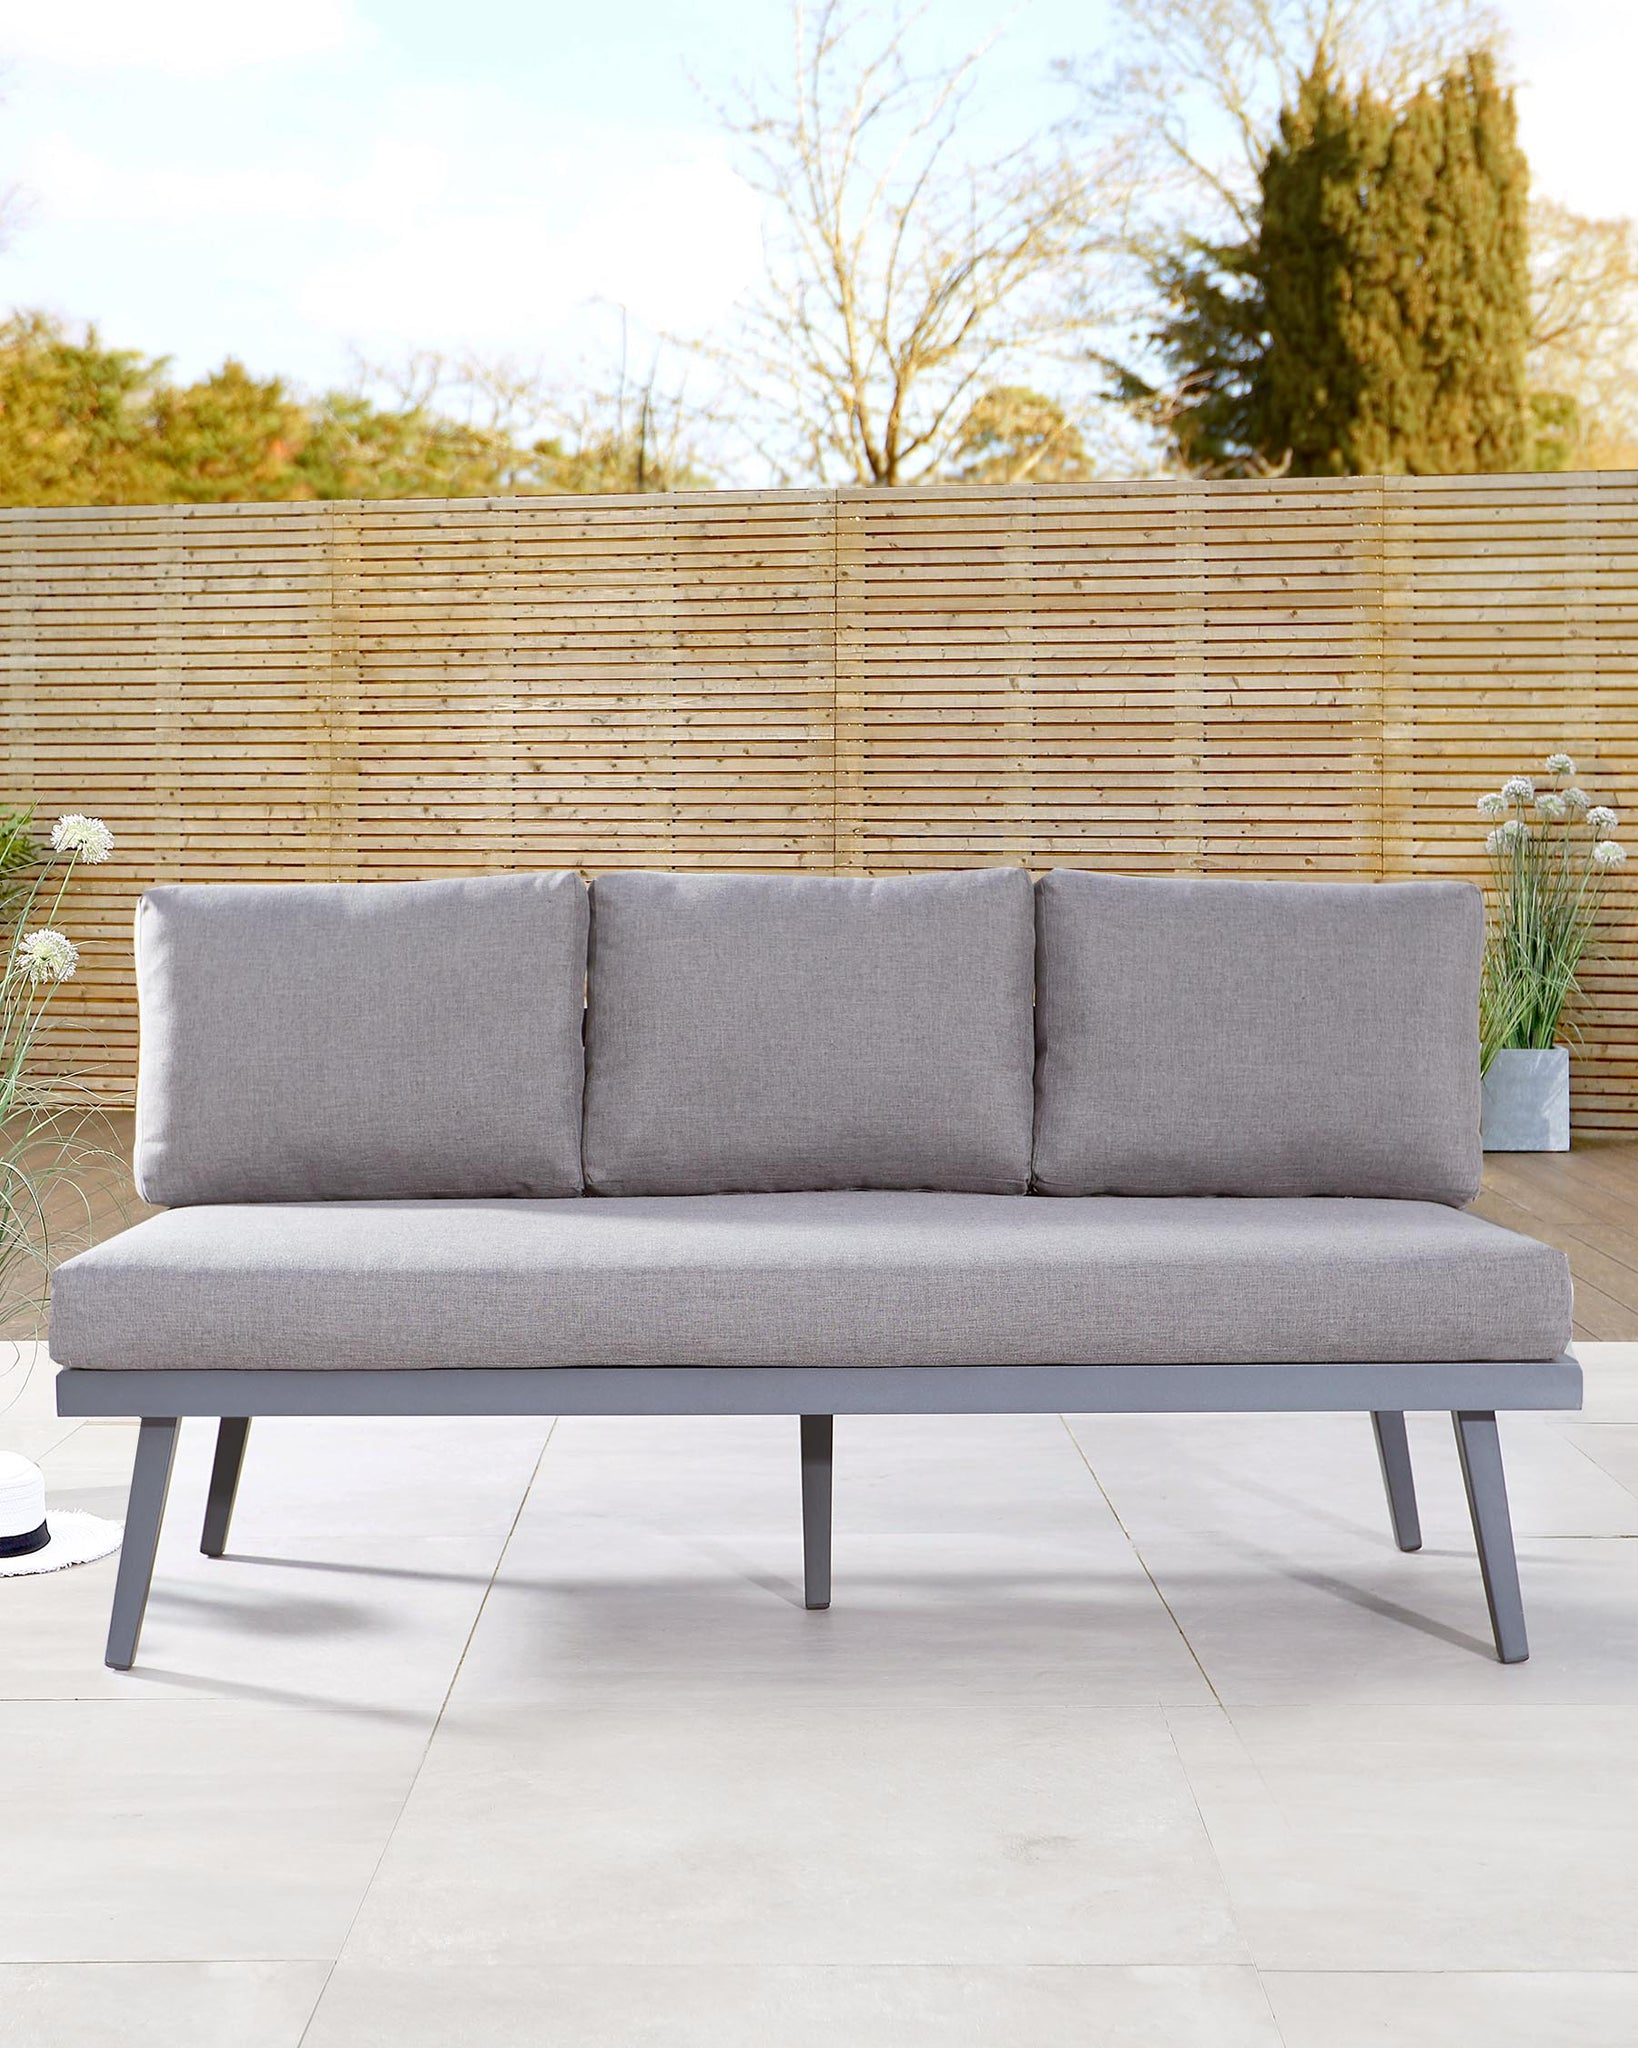 Palermo Grey 3 Seater Outdoor Bench with Backrest